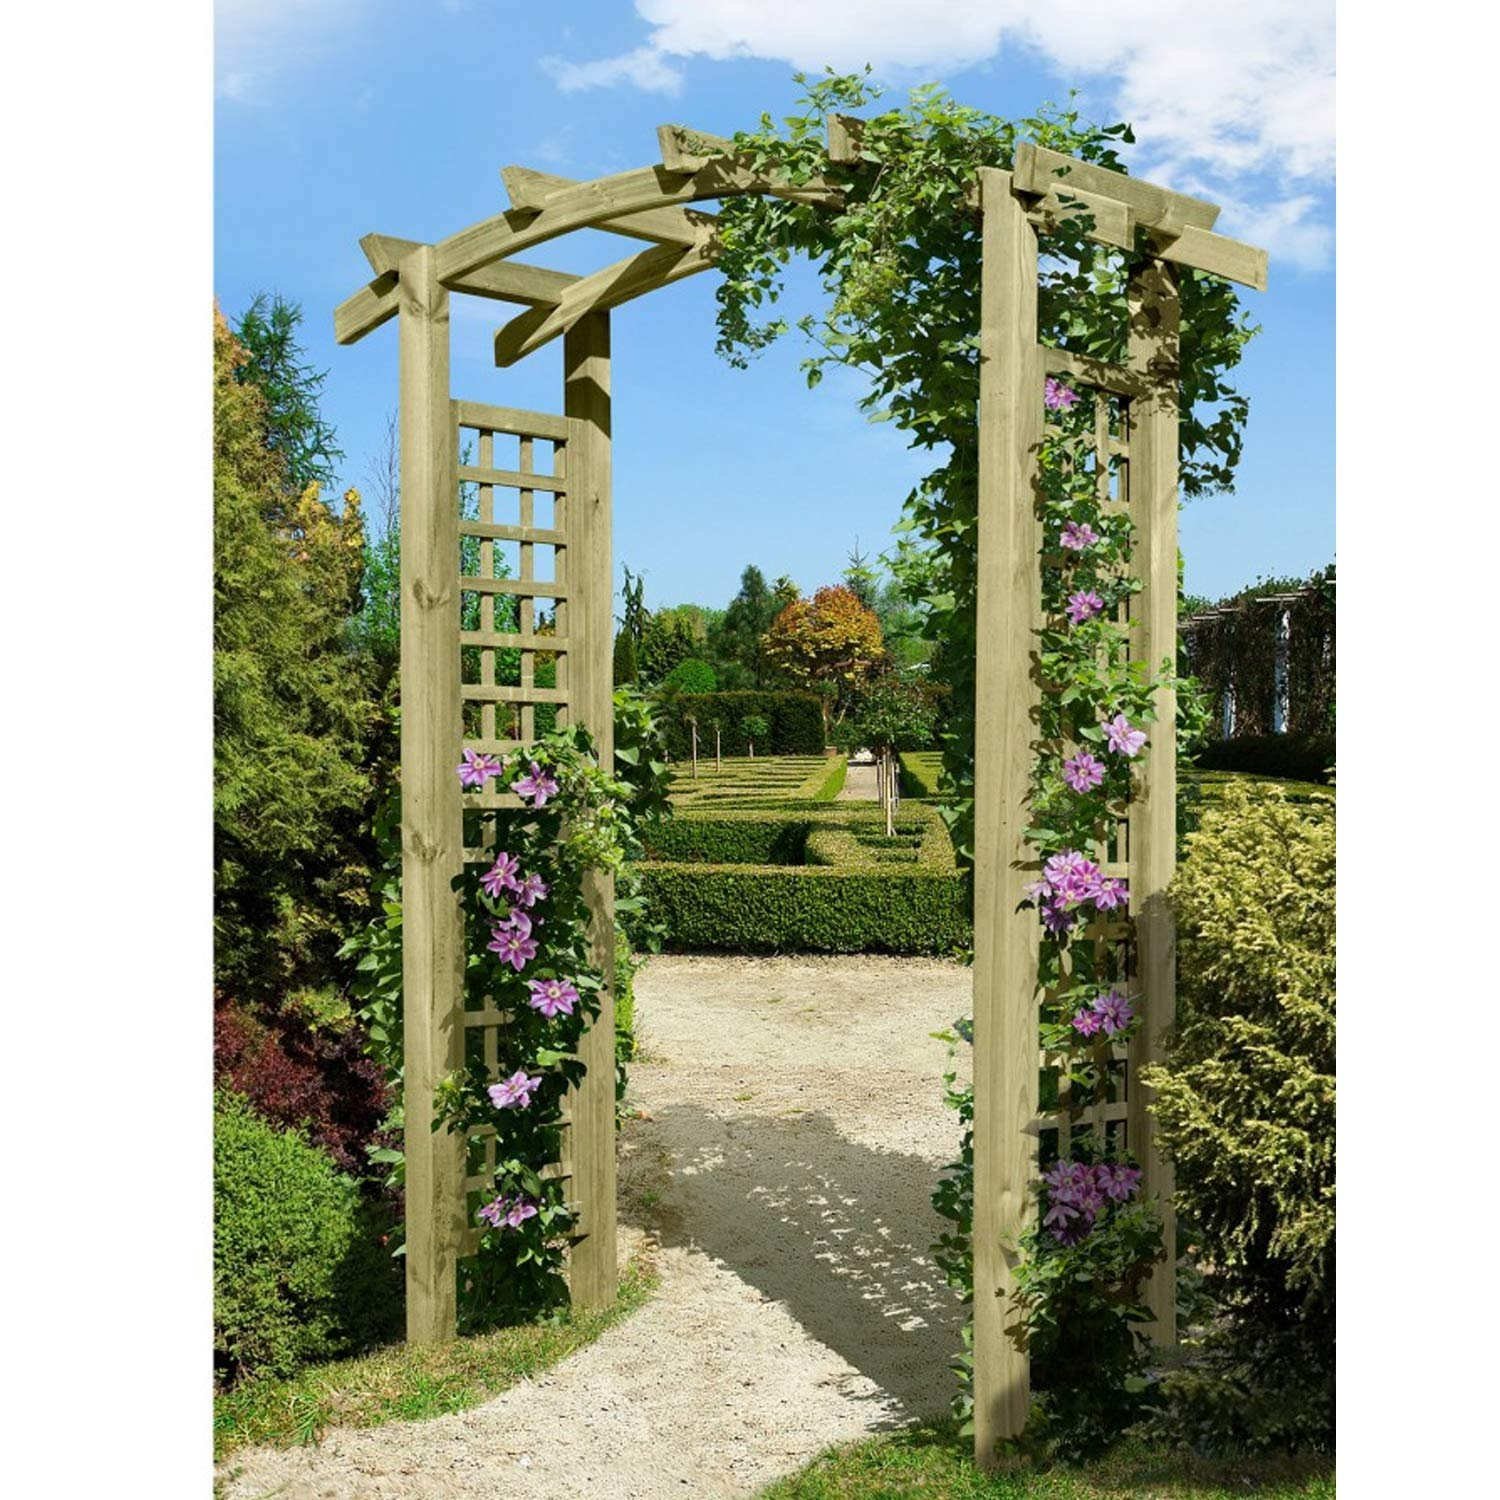 eingangspergola 160x62x220 cm pergola aus holz mit rankelementen von gartenpirat kaufen. Black Bedroom Furniture Sets. Home Design Ideas